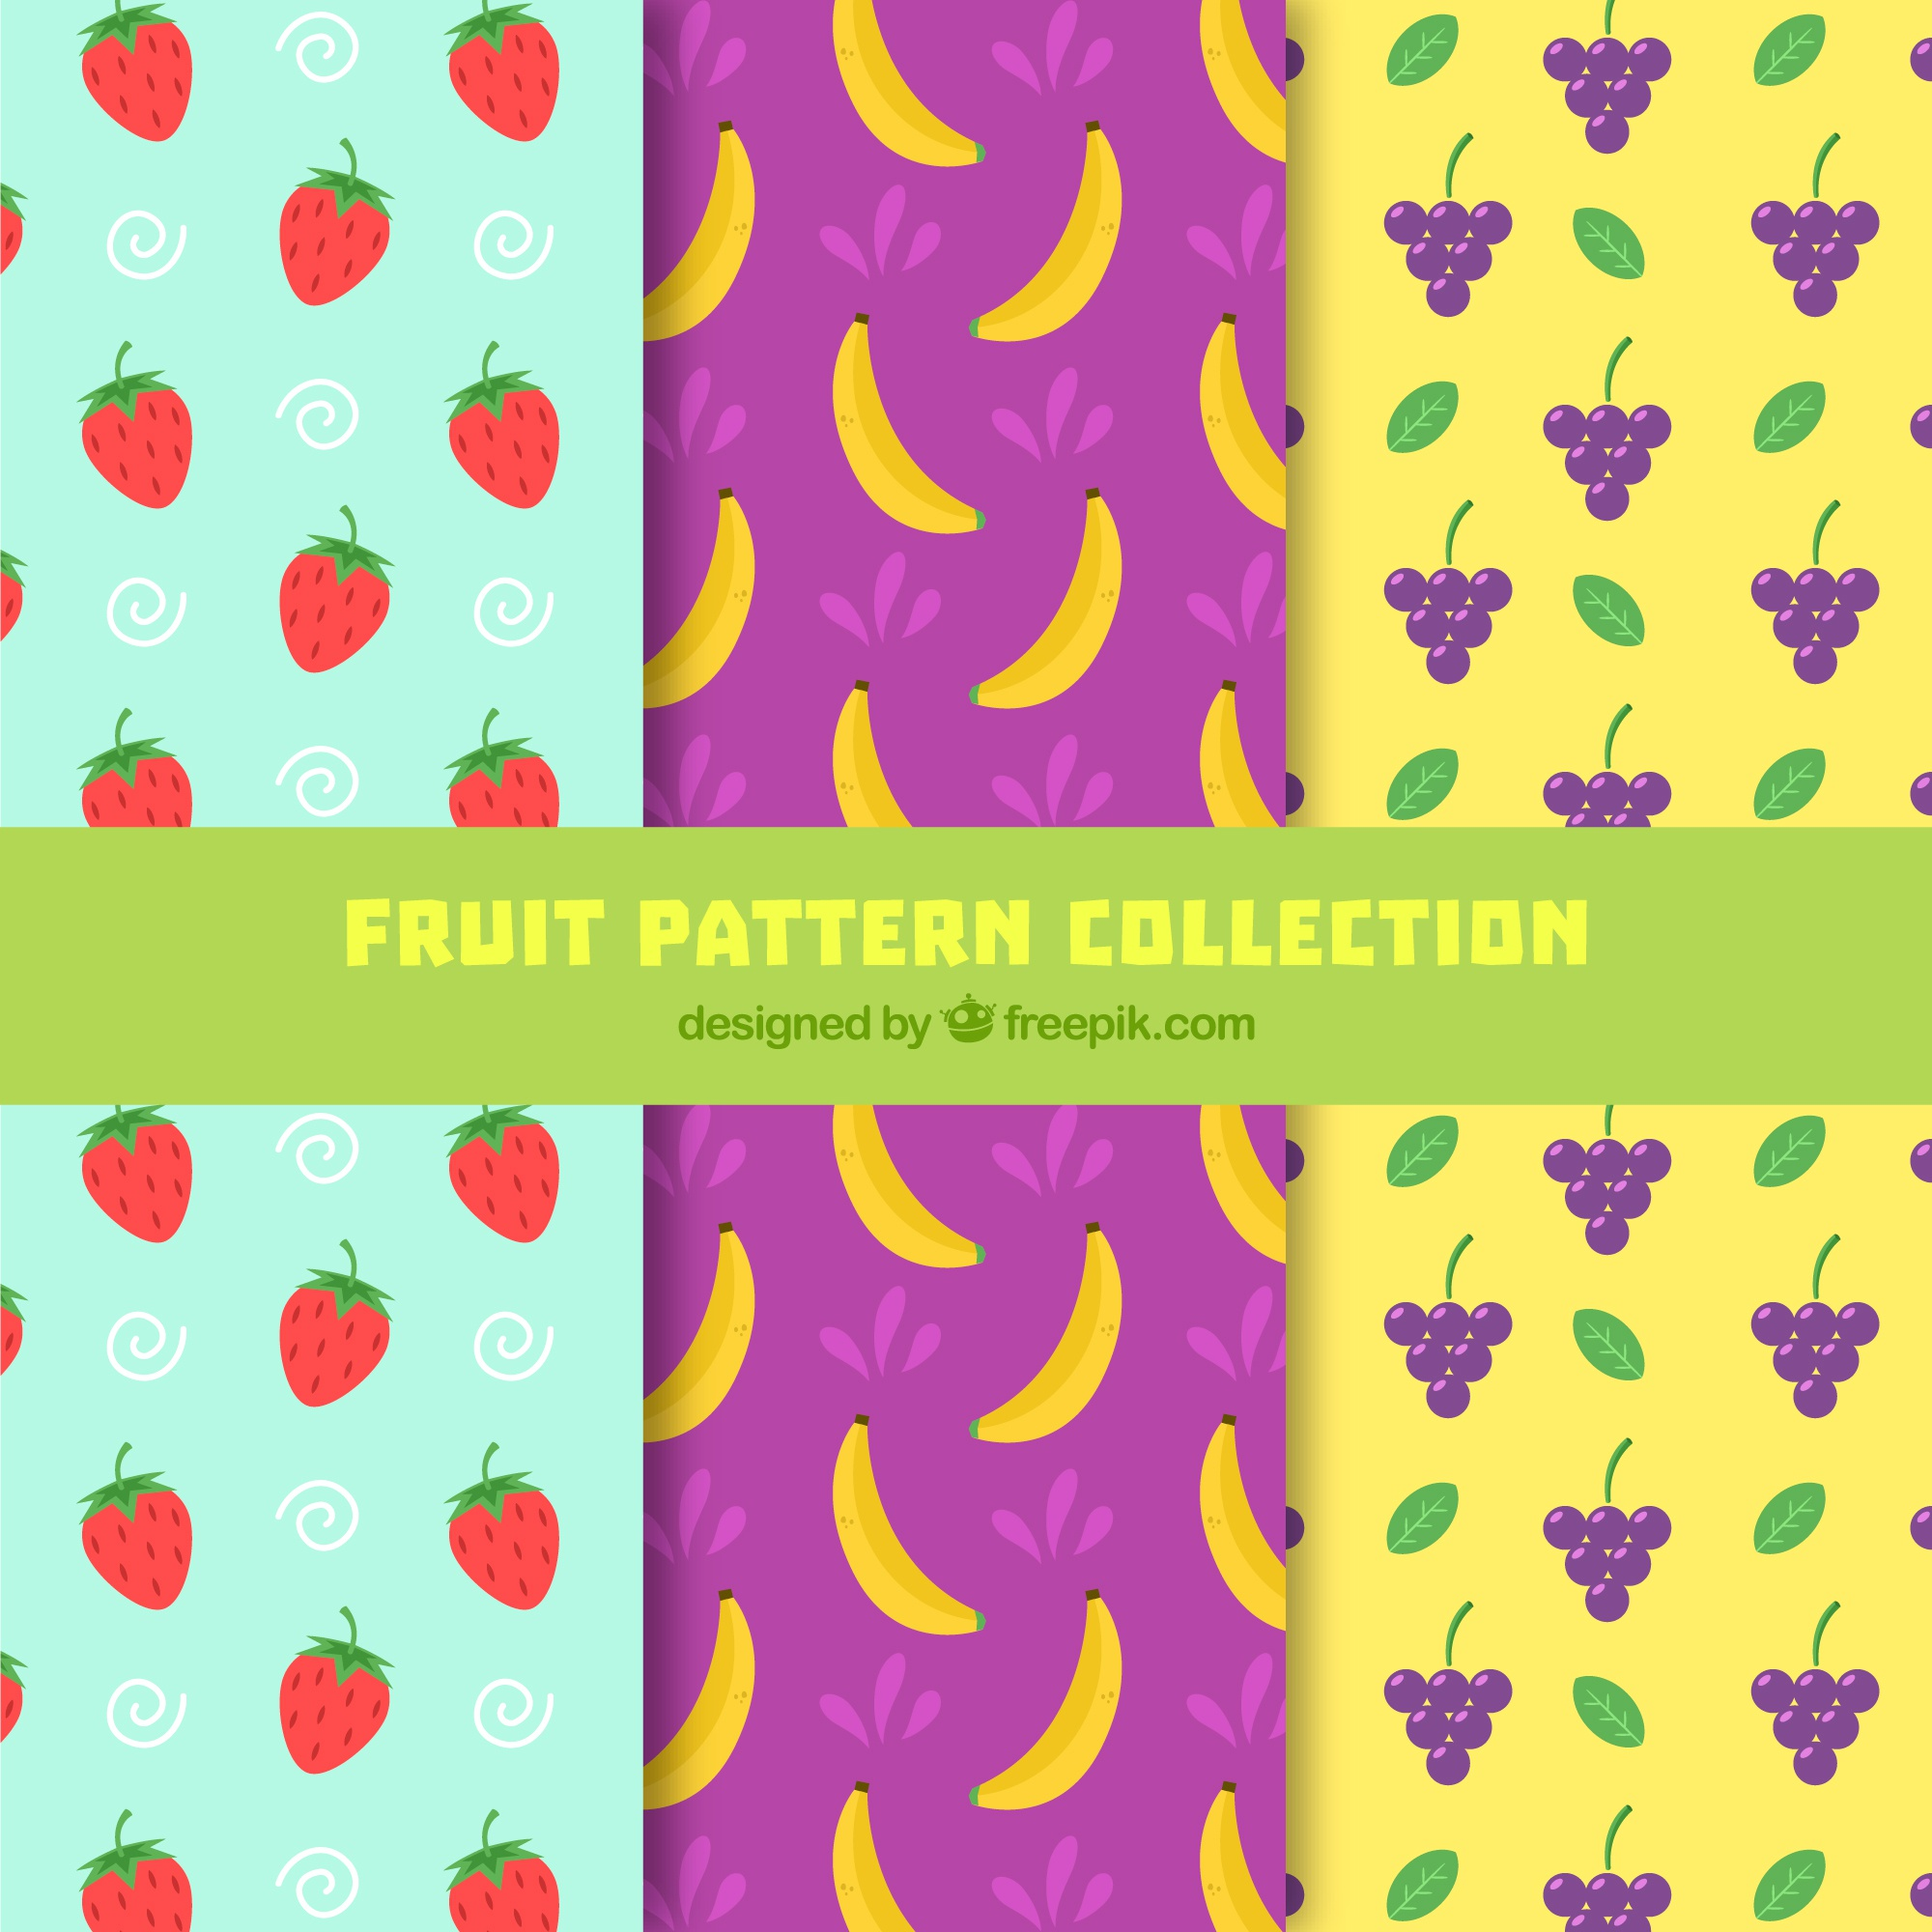 Great patterns with flat fruits